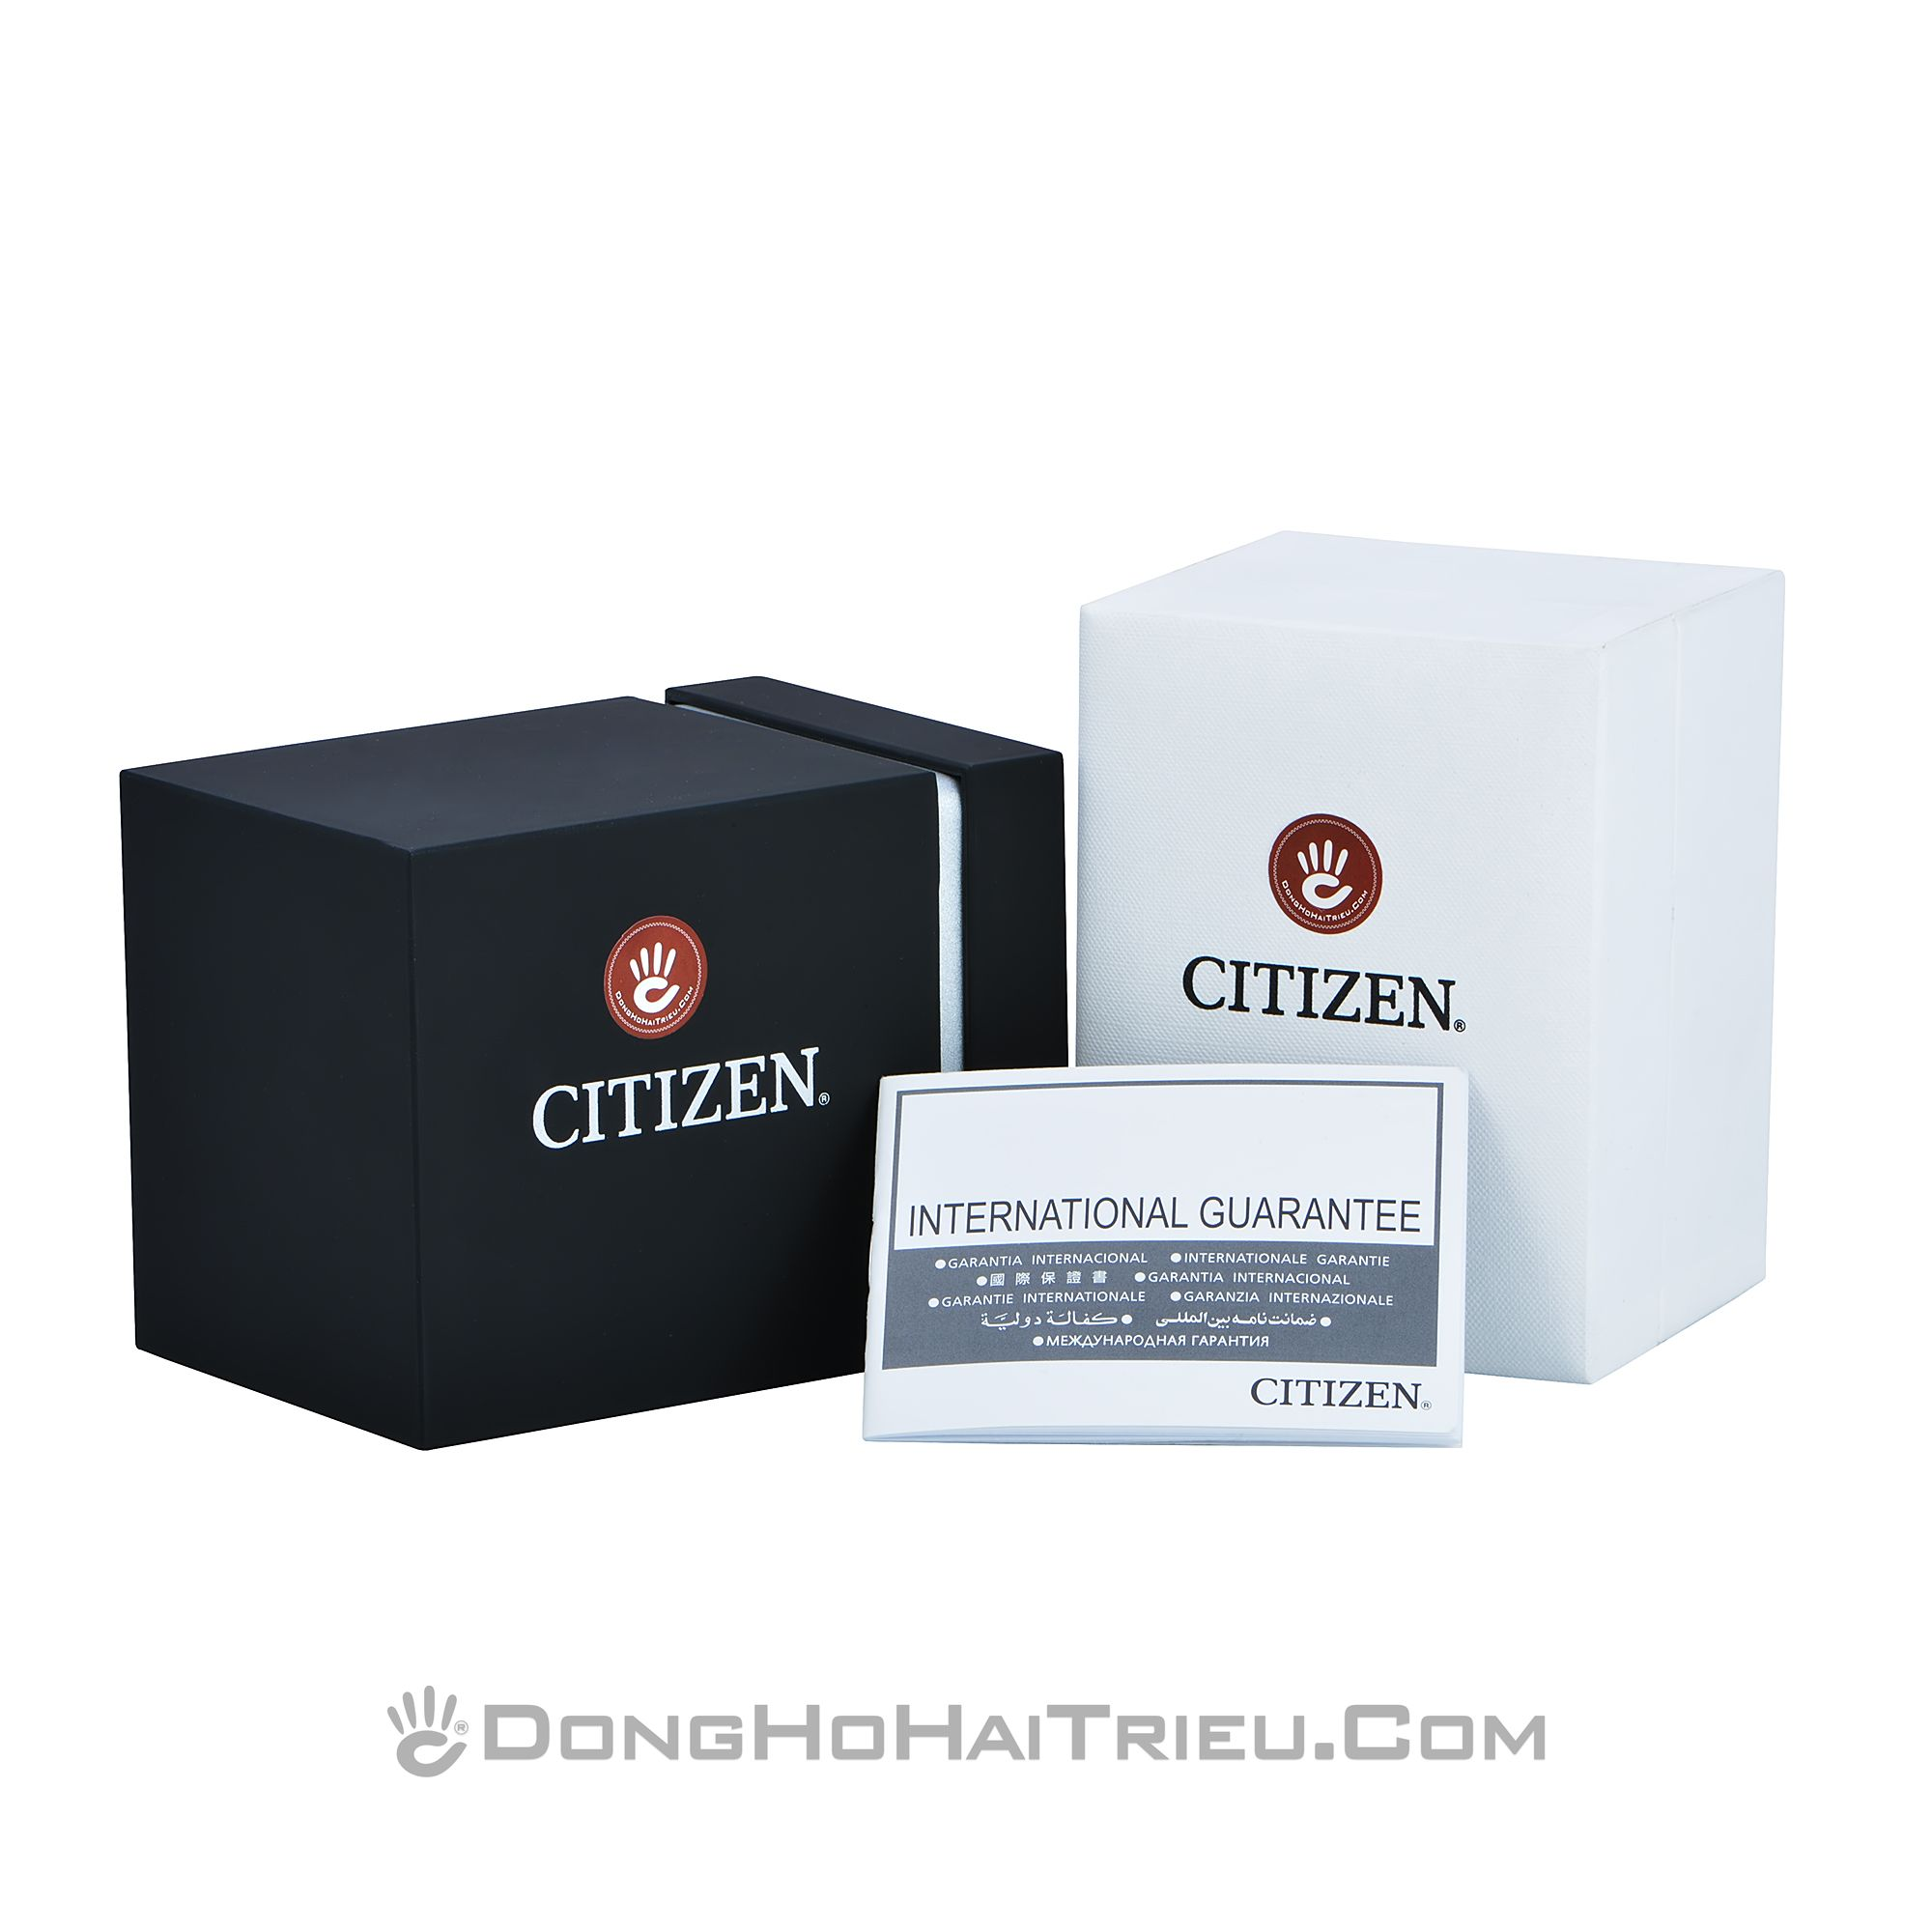 Citizen-Box1 (1)